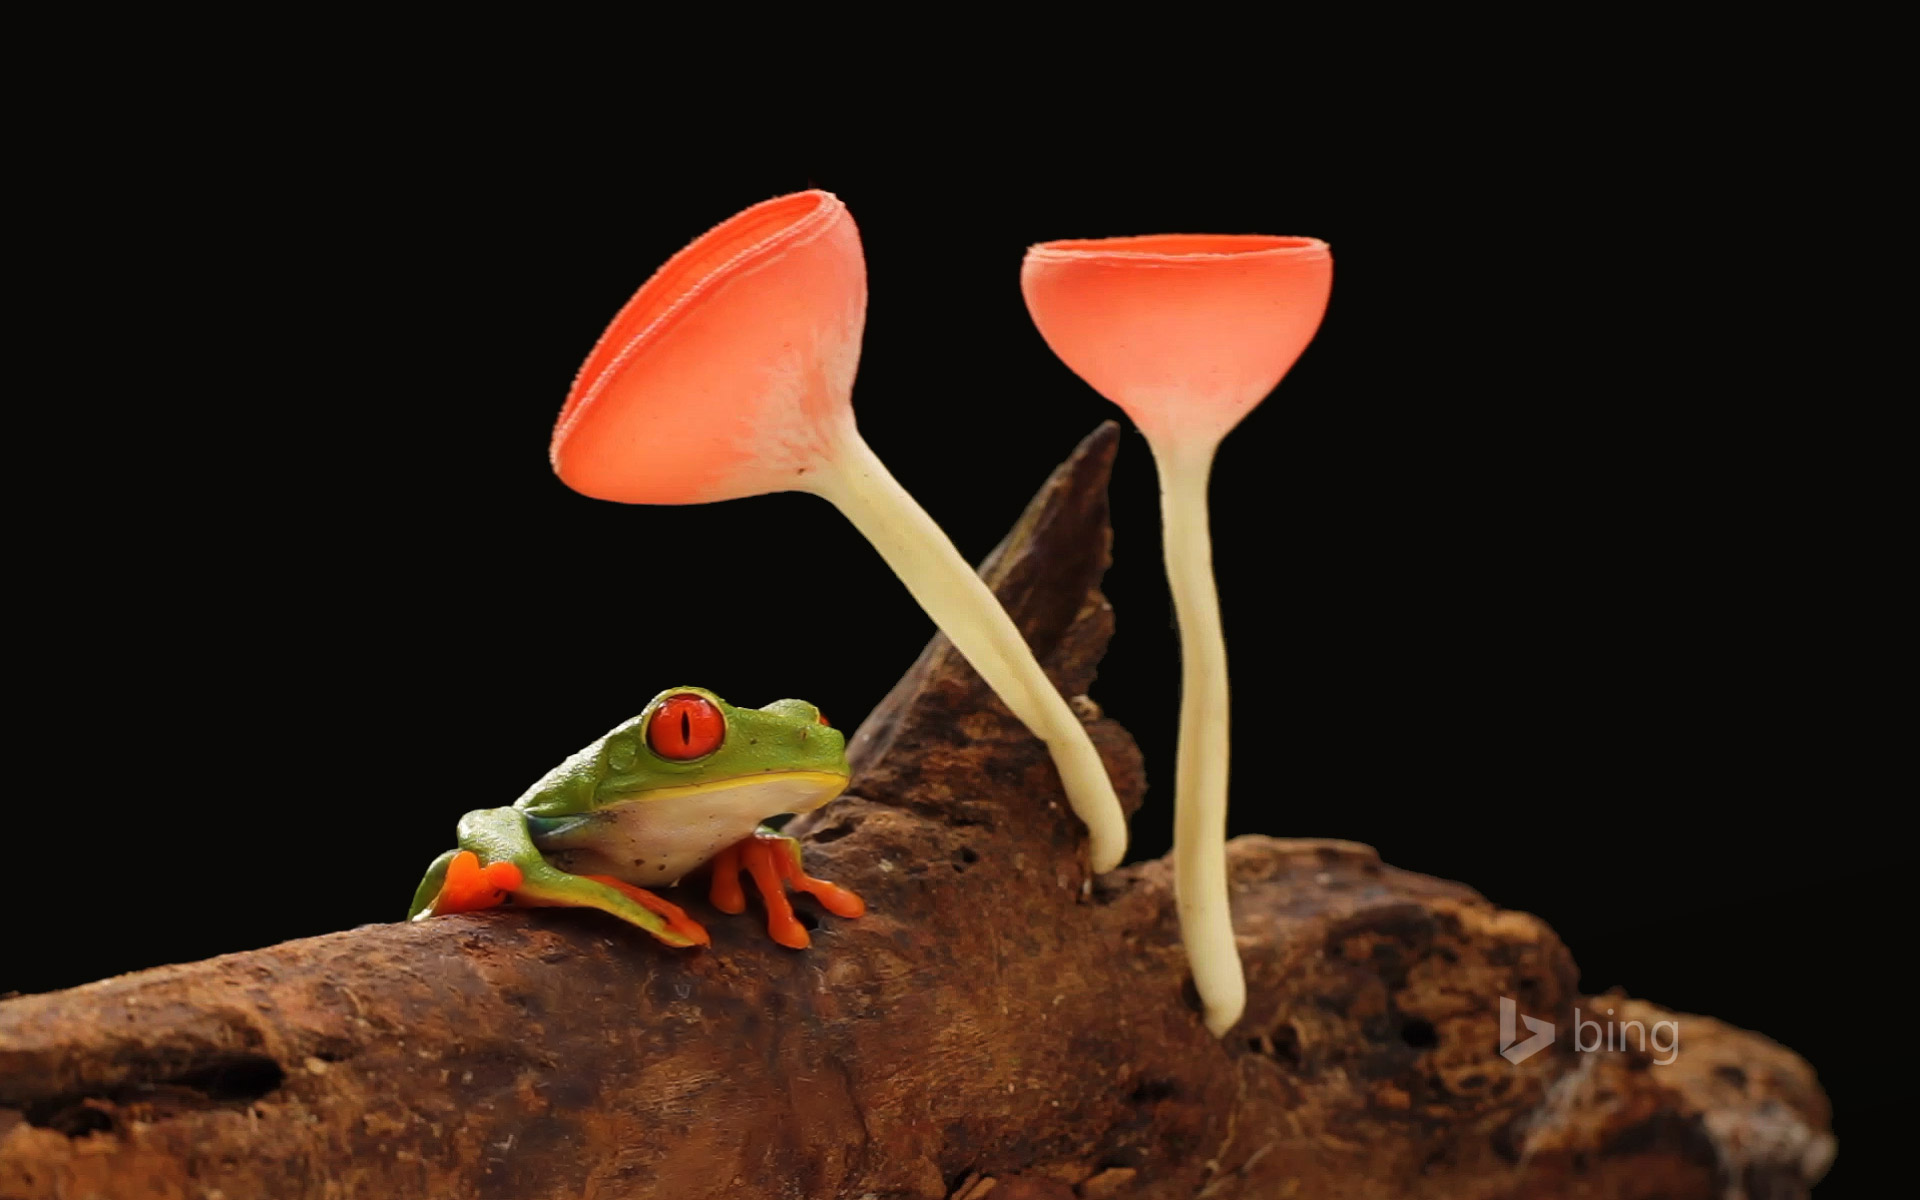 Red-eyed or gaudy leaf frog with mushrooms